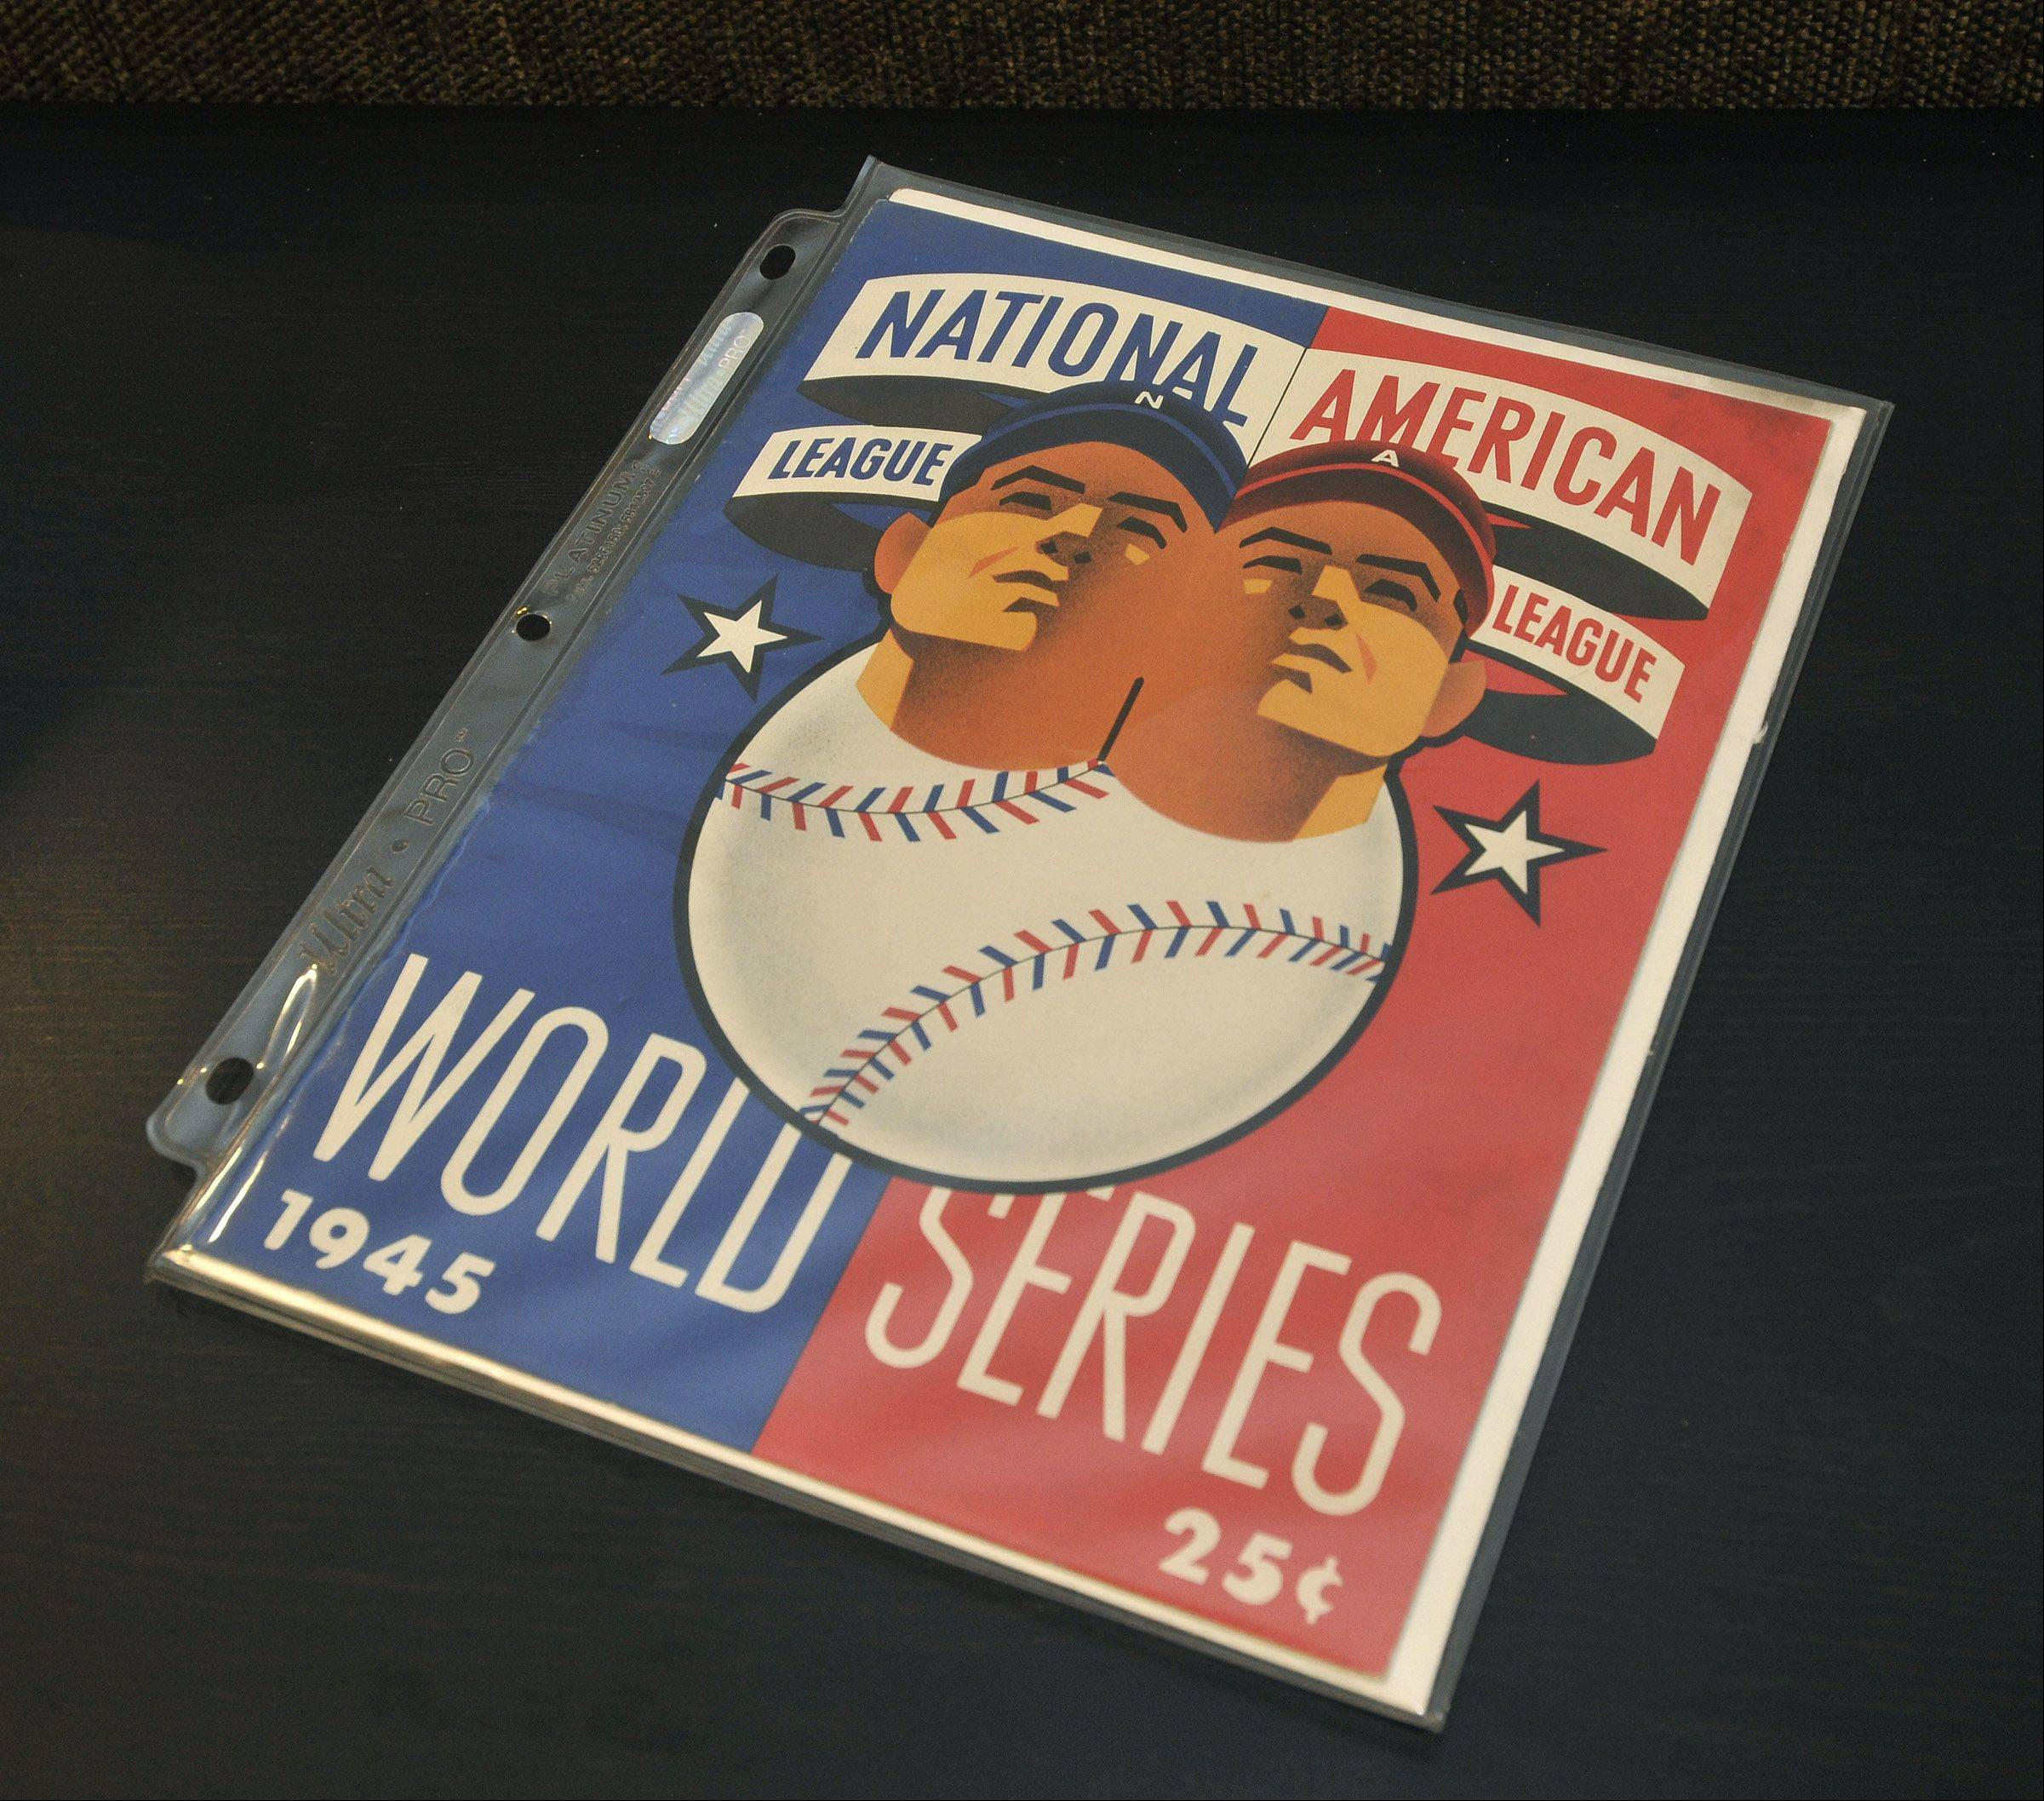 Among the souvenirs in the eclectic collections of longtime Cubs fans Kelley Neal and Sue Kren is this program from the team's last World Series appearance in 1945.